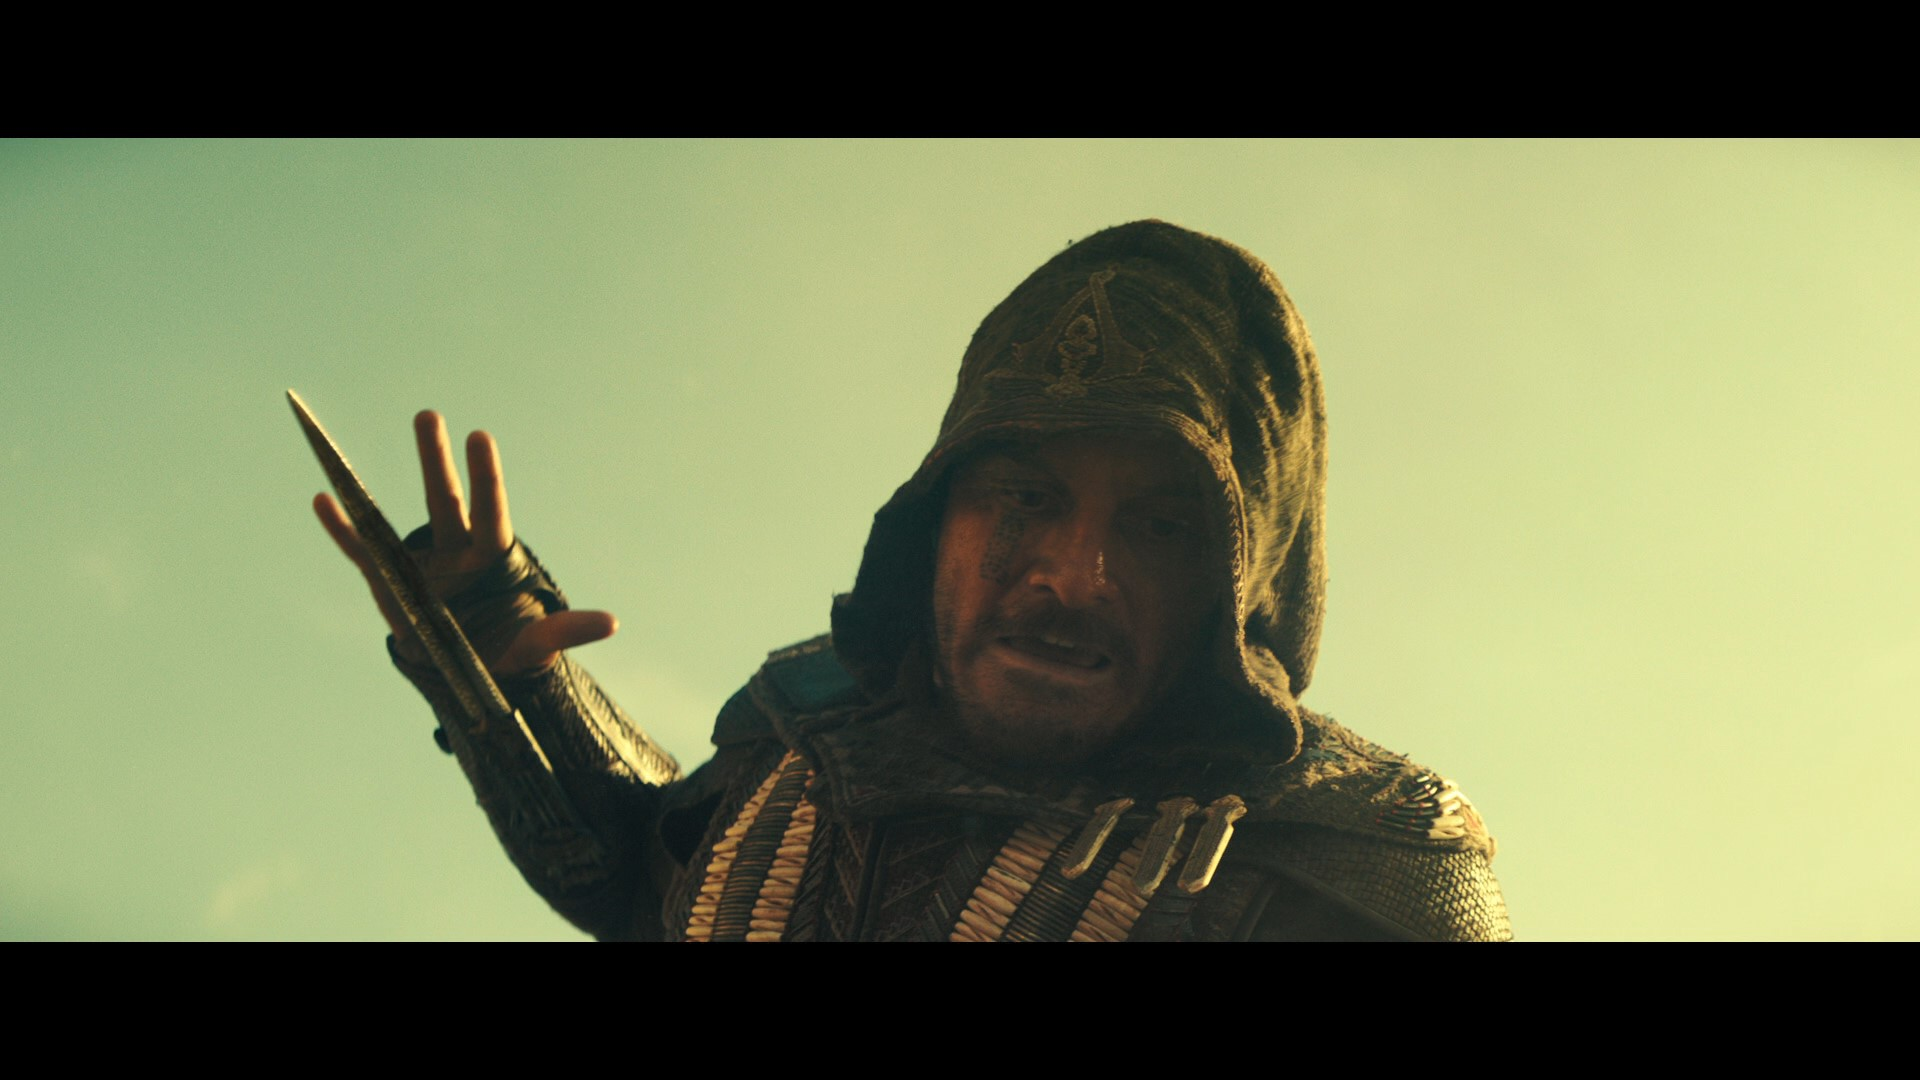 ASSASSIN'S CREED (2016) - Aguilar's (Michael Fassbender) SFX Wristblade - Image 13 of 17